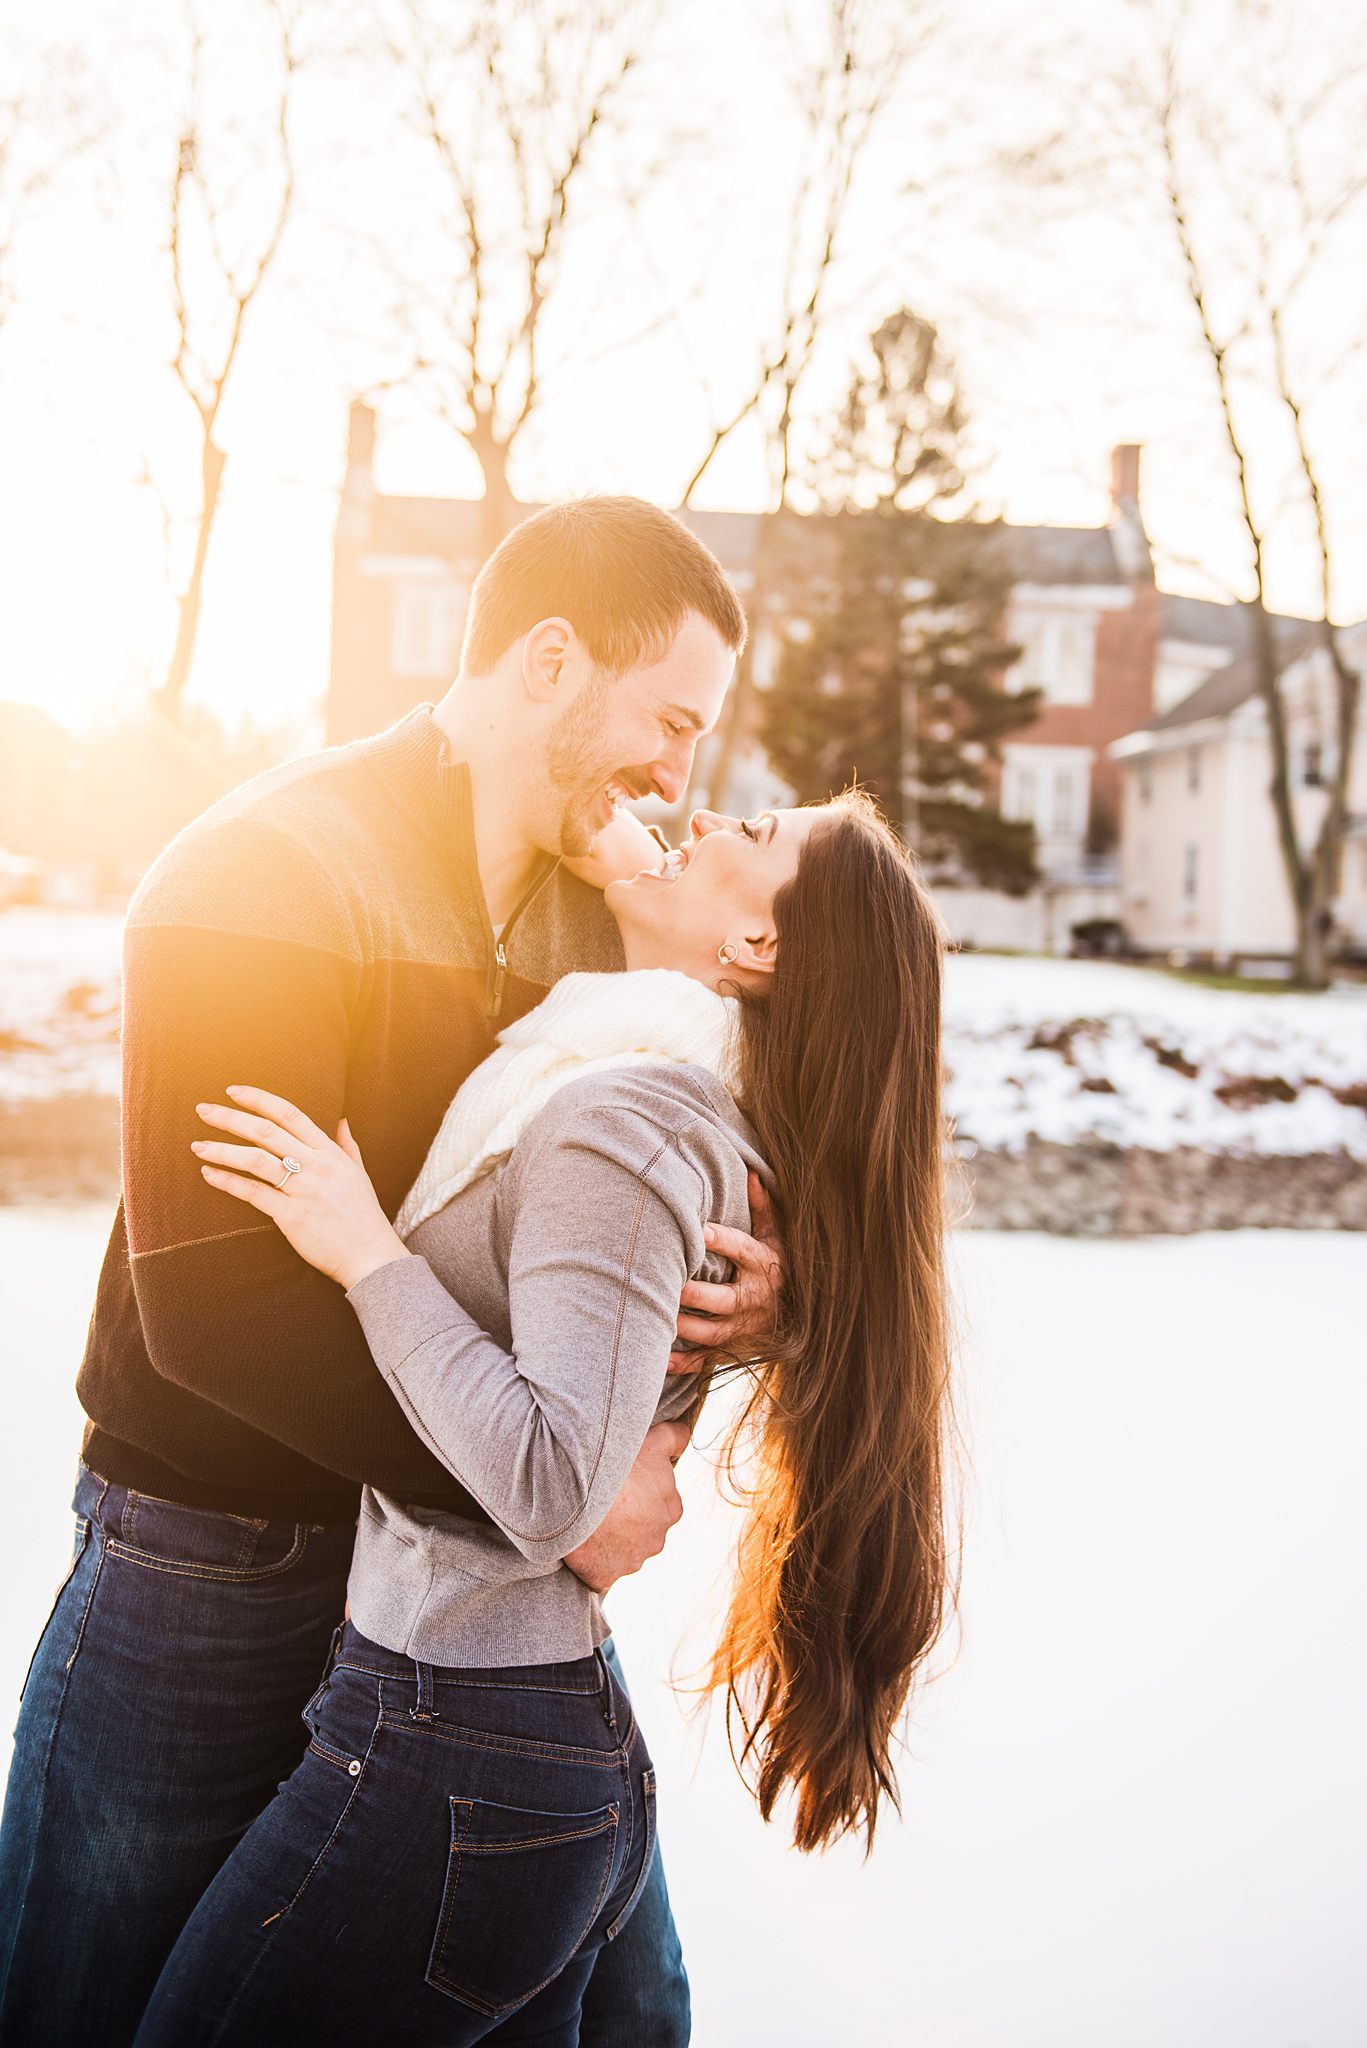 Schoen_Place_Rochester_Engagement_Session_JILL_STUDIO_Rochester_NY_Photographer_DSC_2010.jpg